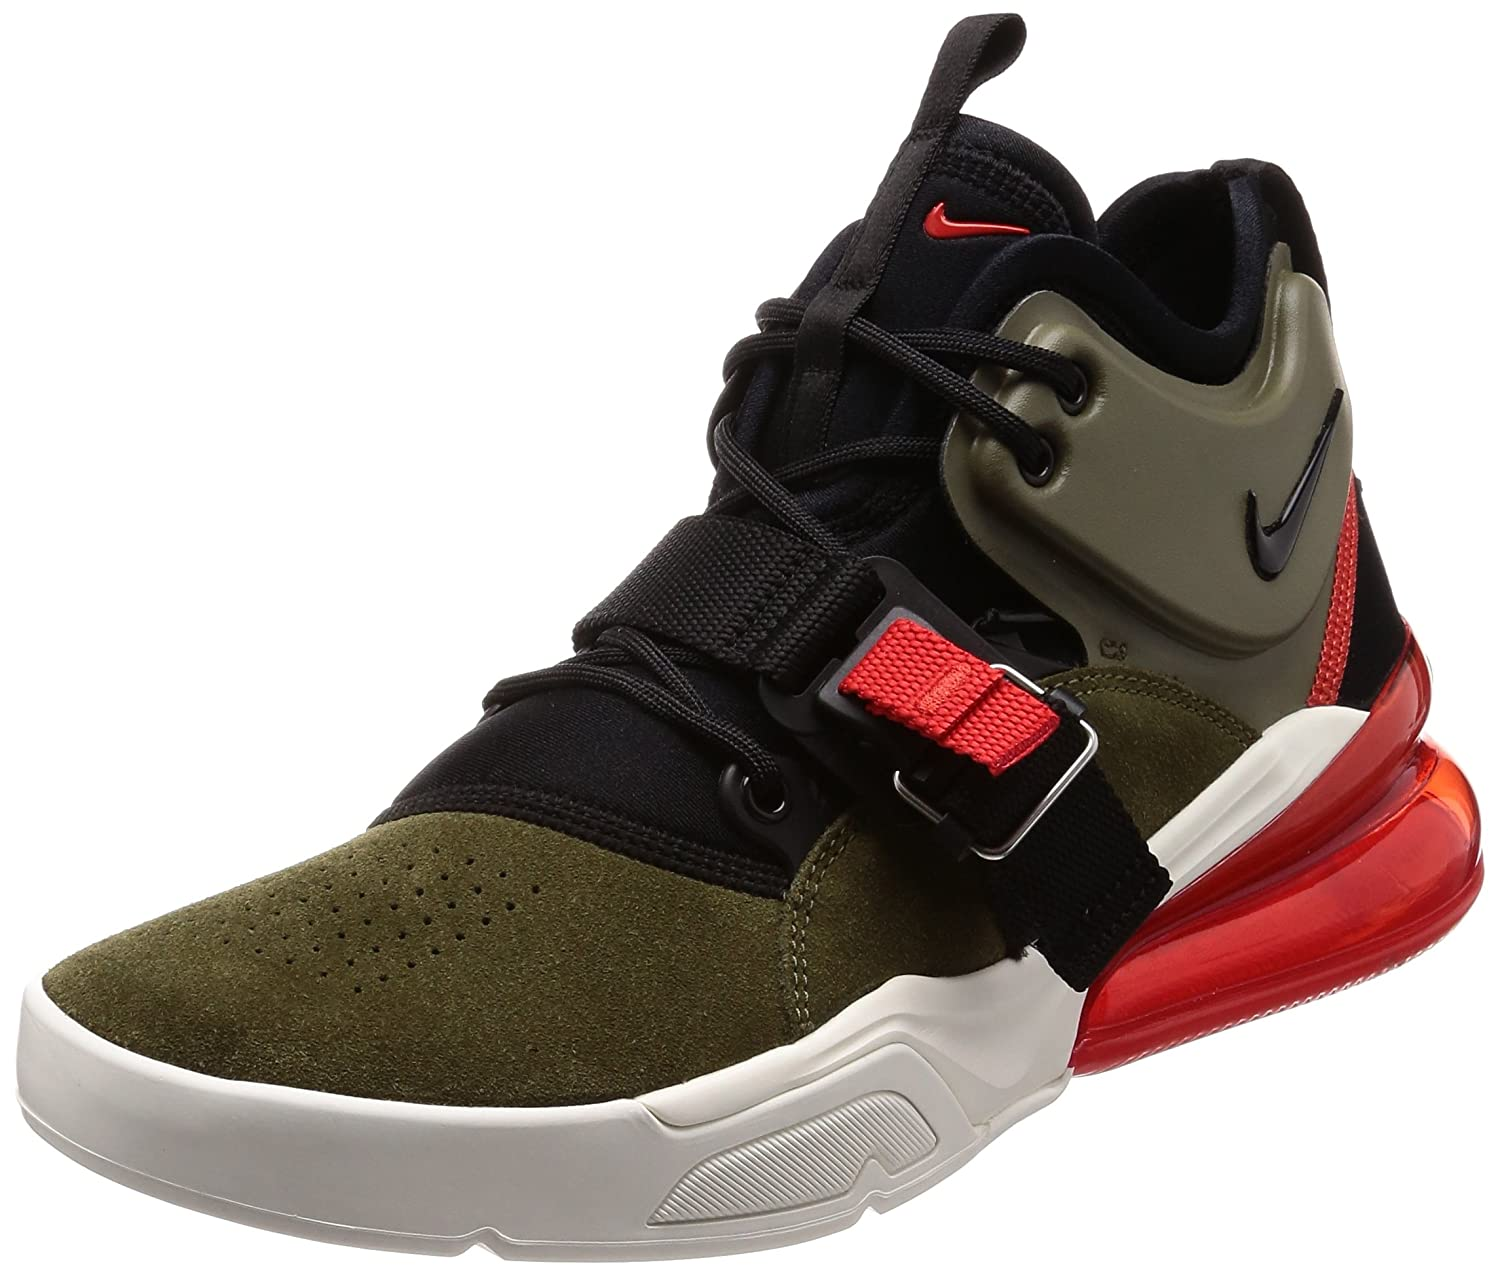 5f3b6880e Amazon.com | Nike Air Force 270 Men's Running Shoes Medium Olive/Black  AH6772-200 (9.5 D(M) US) | Running